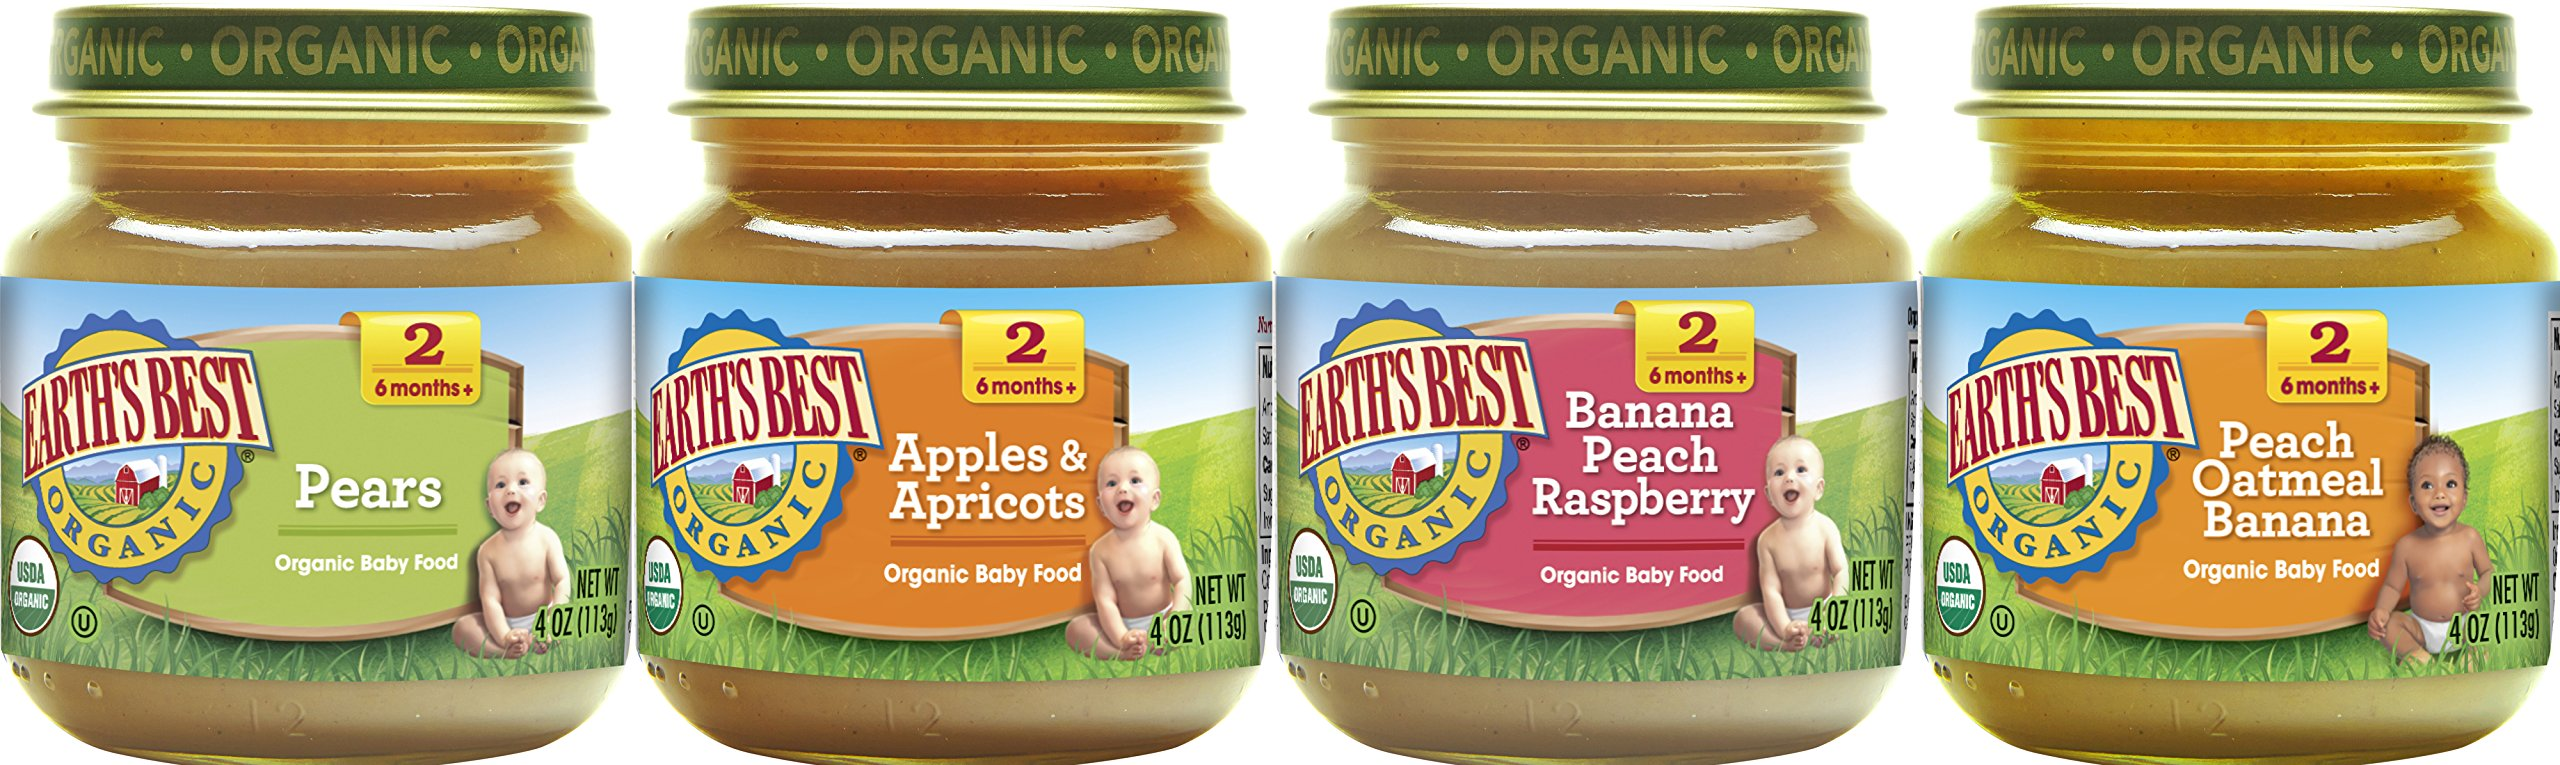 Earth's Best Organic Stage 2 Baby Food, Favorite Fruits Variety Pack, 4 oz. Jar (12 Count) by Earth's Best